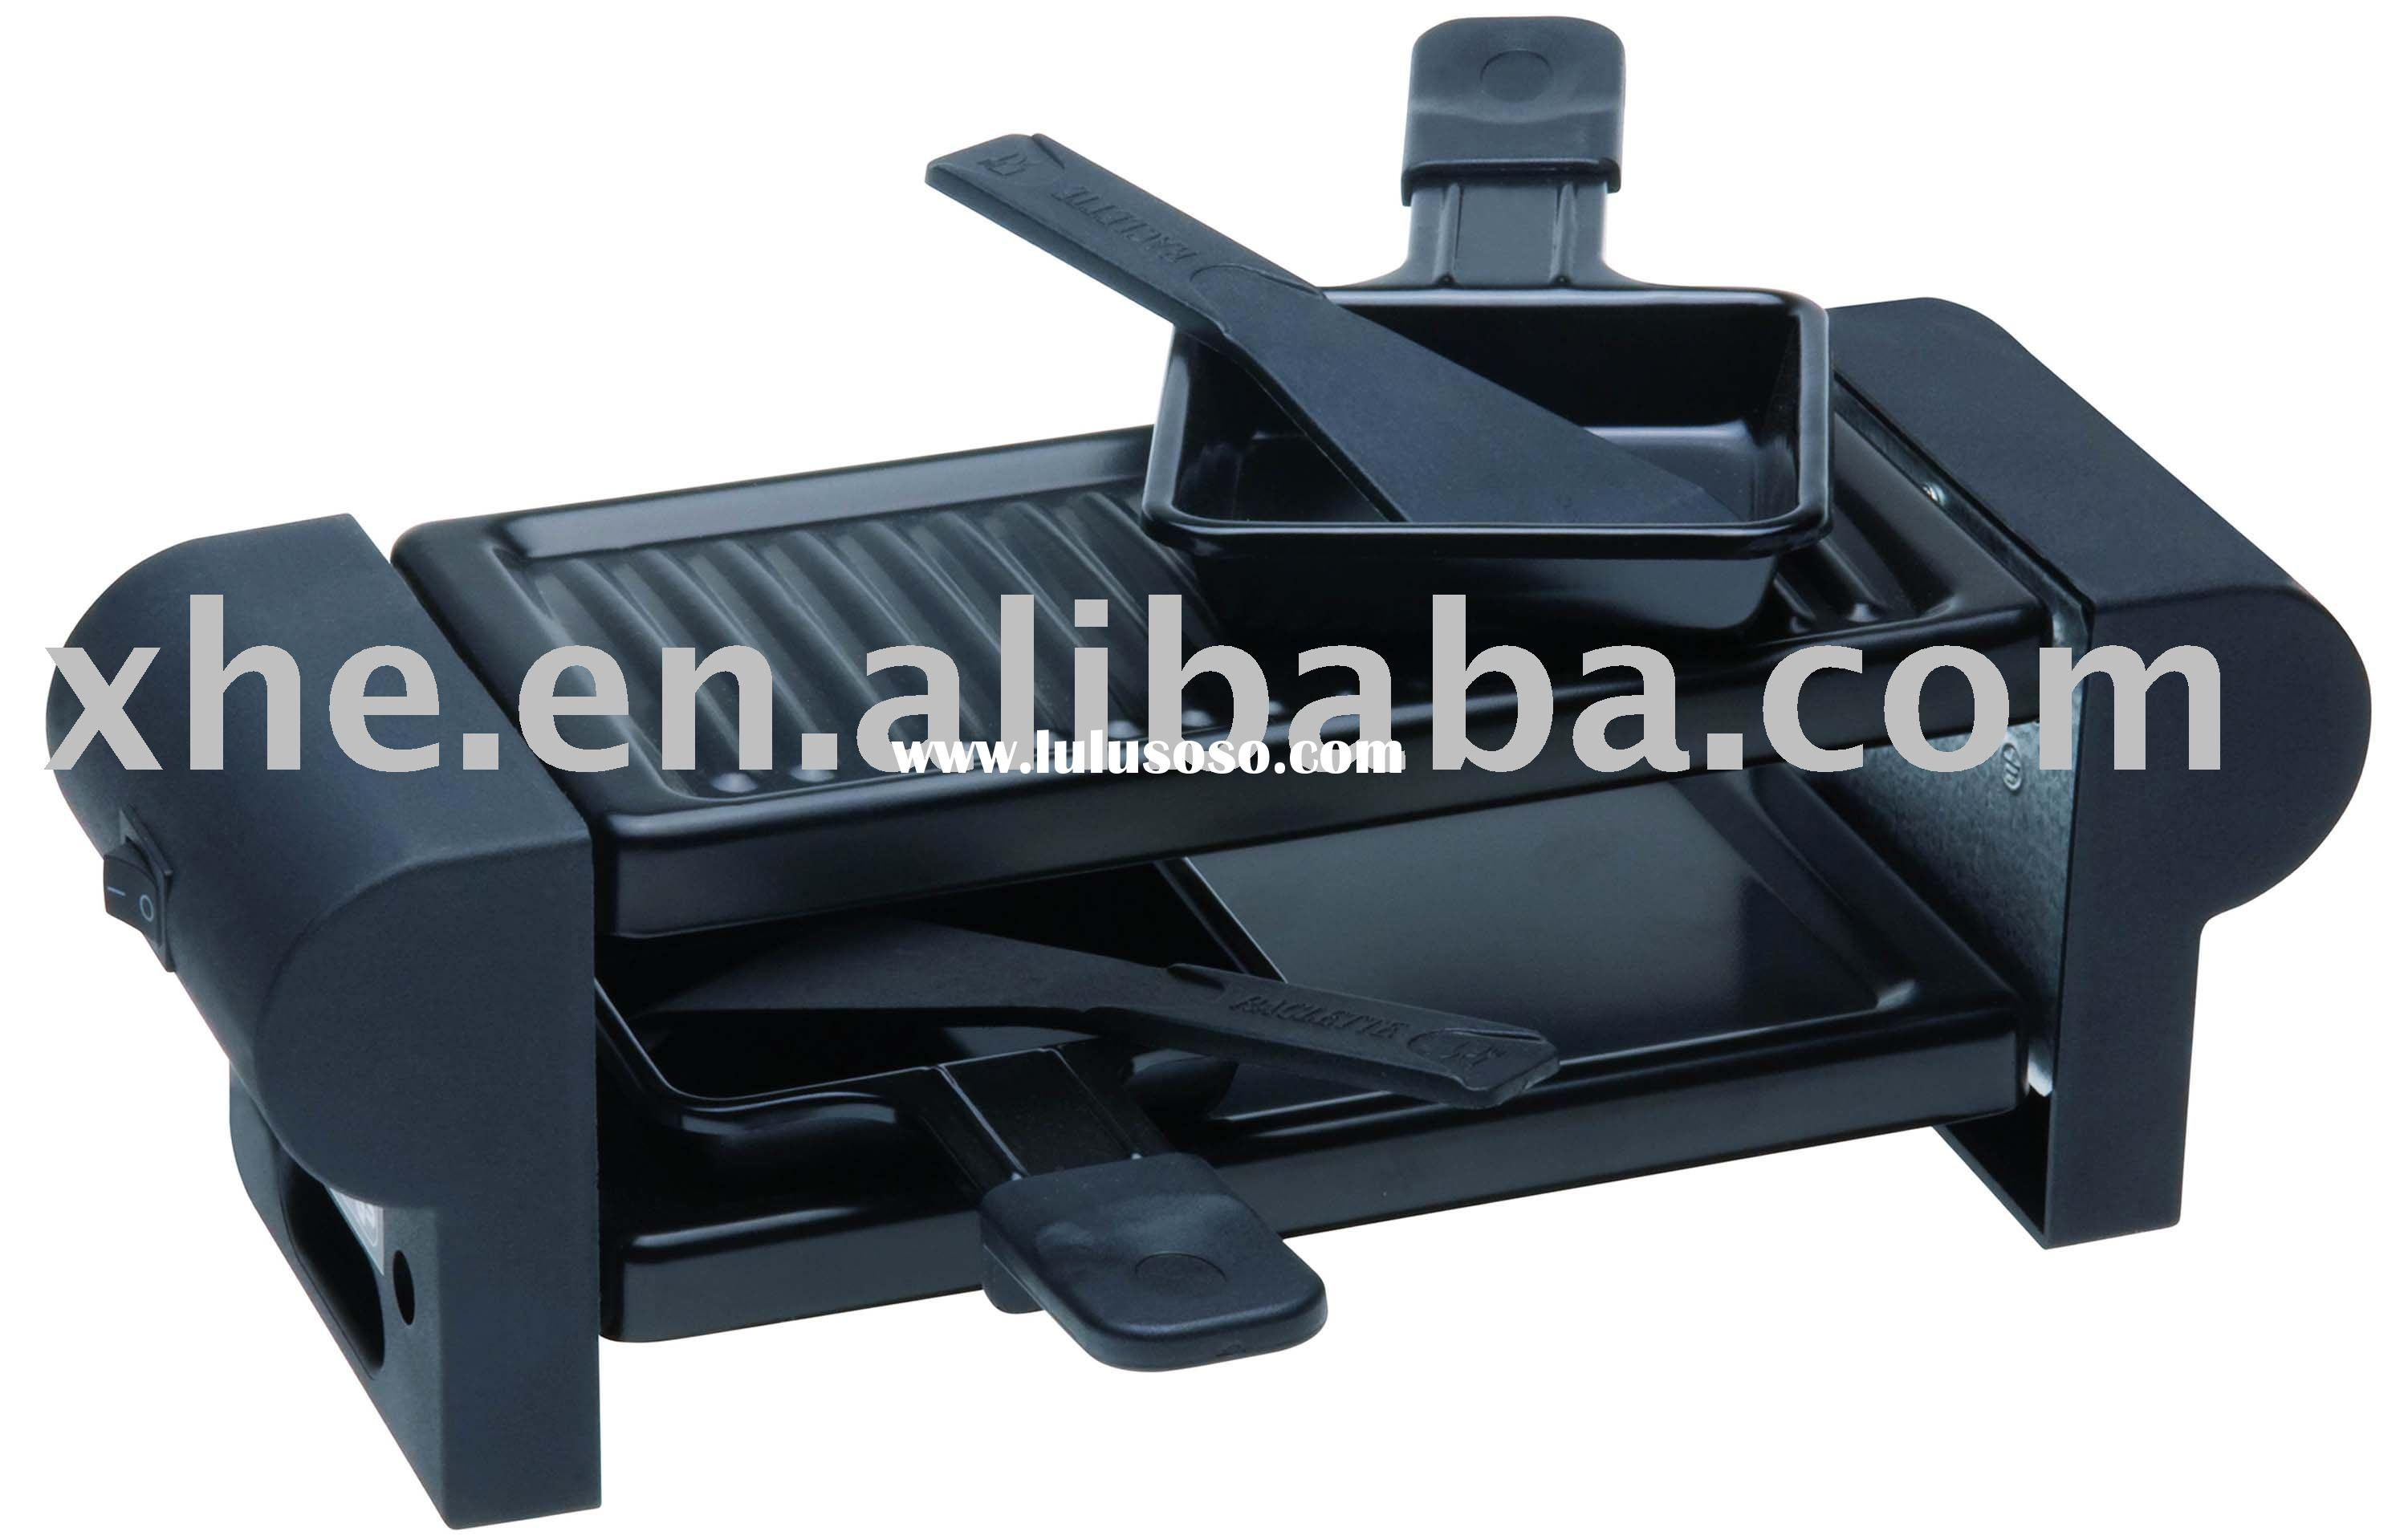 raclette grill for 10 person for sale price china manufacturer supplier 496053. Black Bedroom Furniture Sets. Home Design Ideas